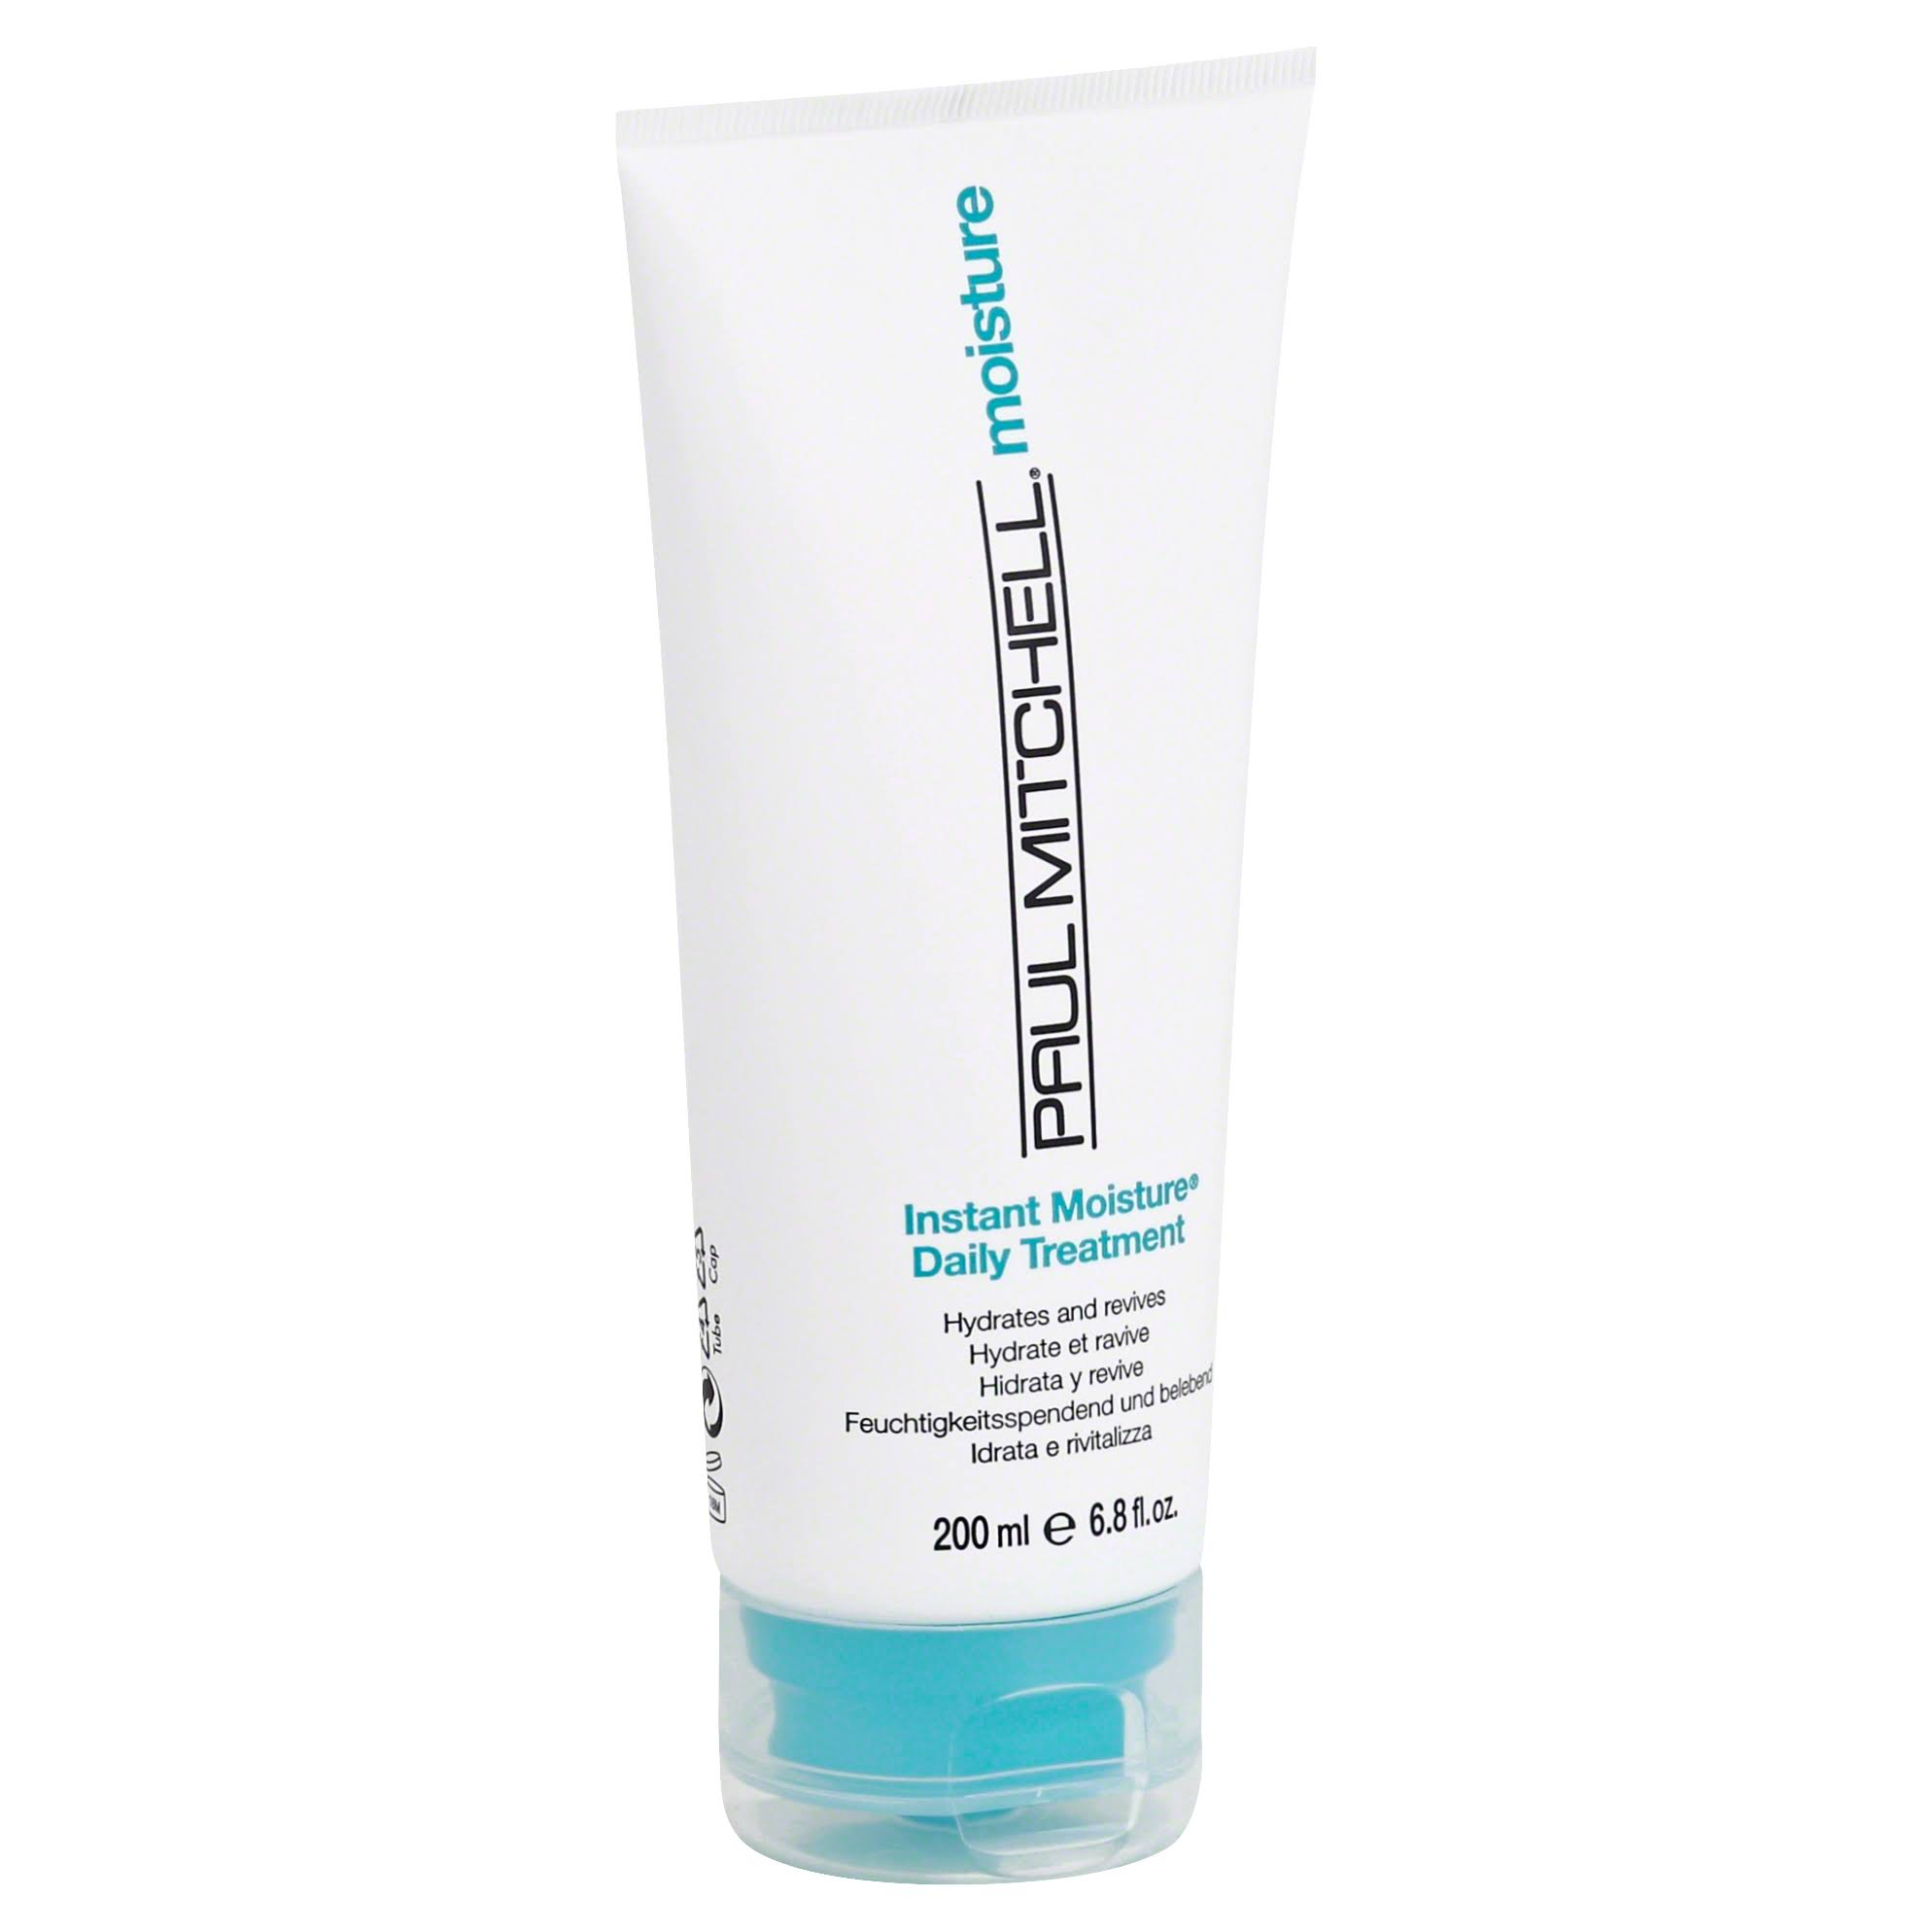 Paul Mitchell Moisture Instant Daily Treatment - 200ml